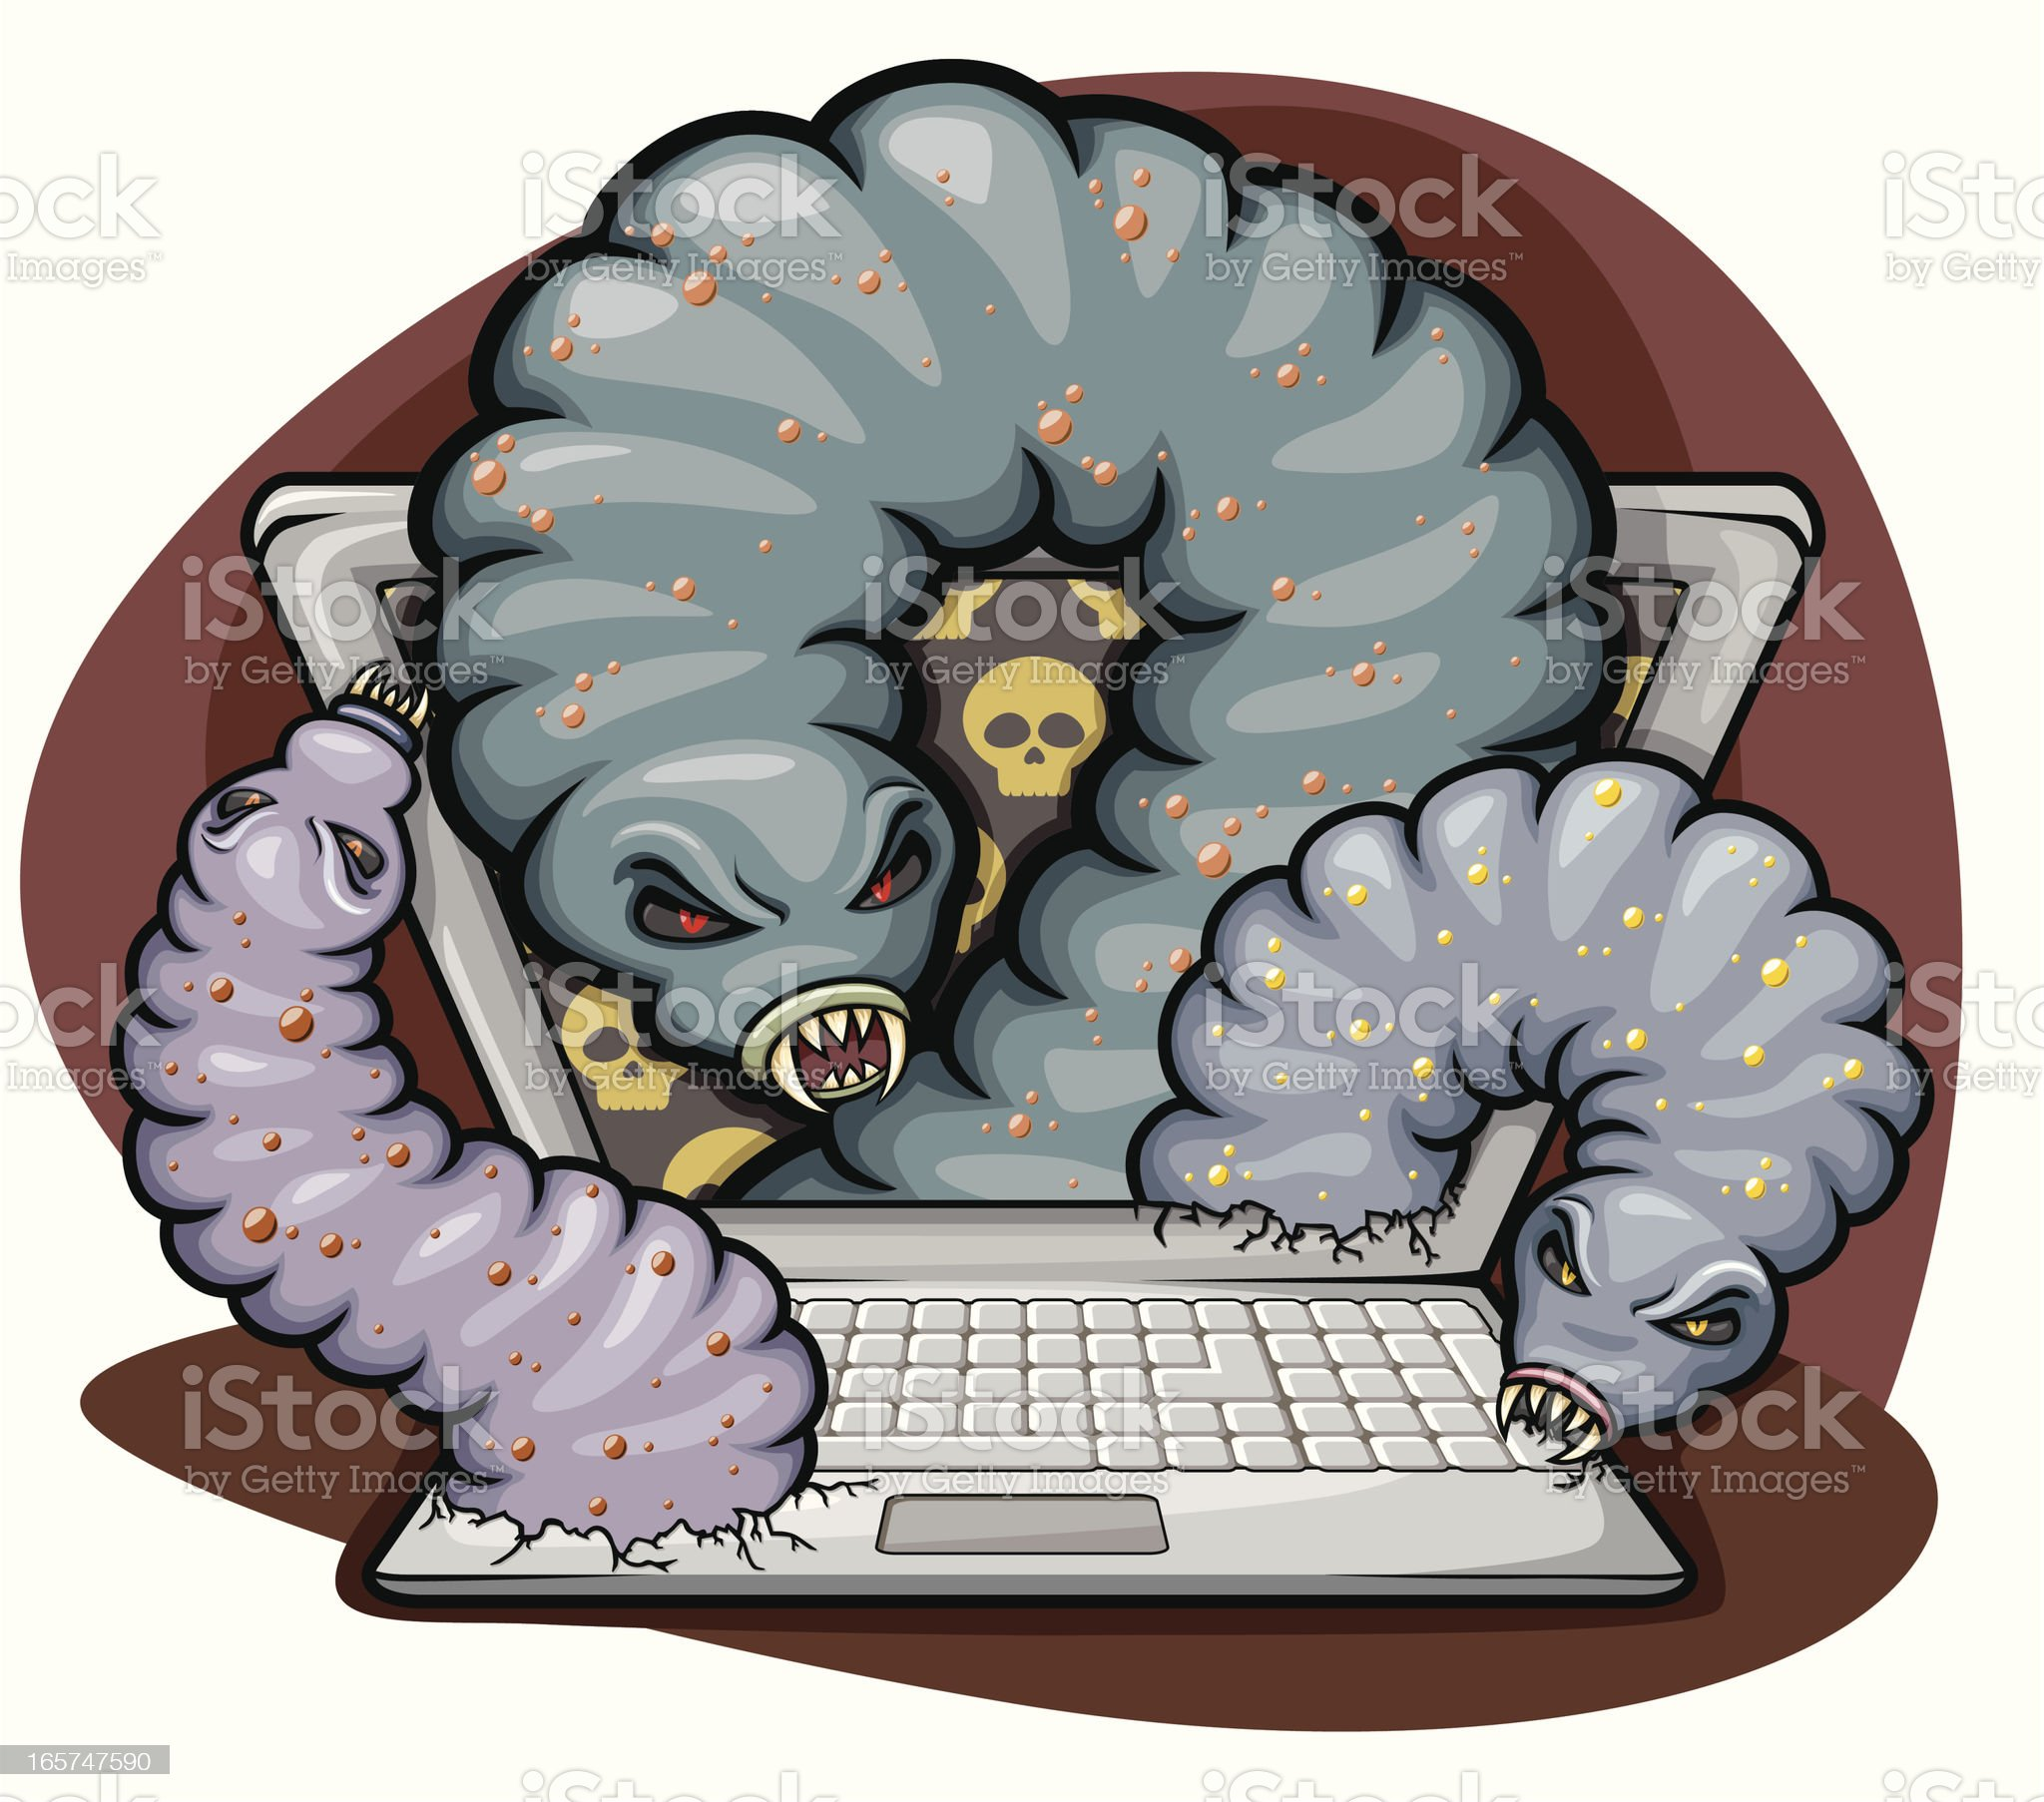 badly infected computer royalty-free stock vector art